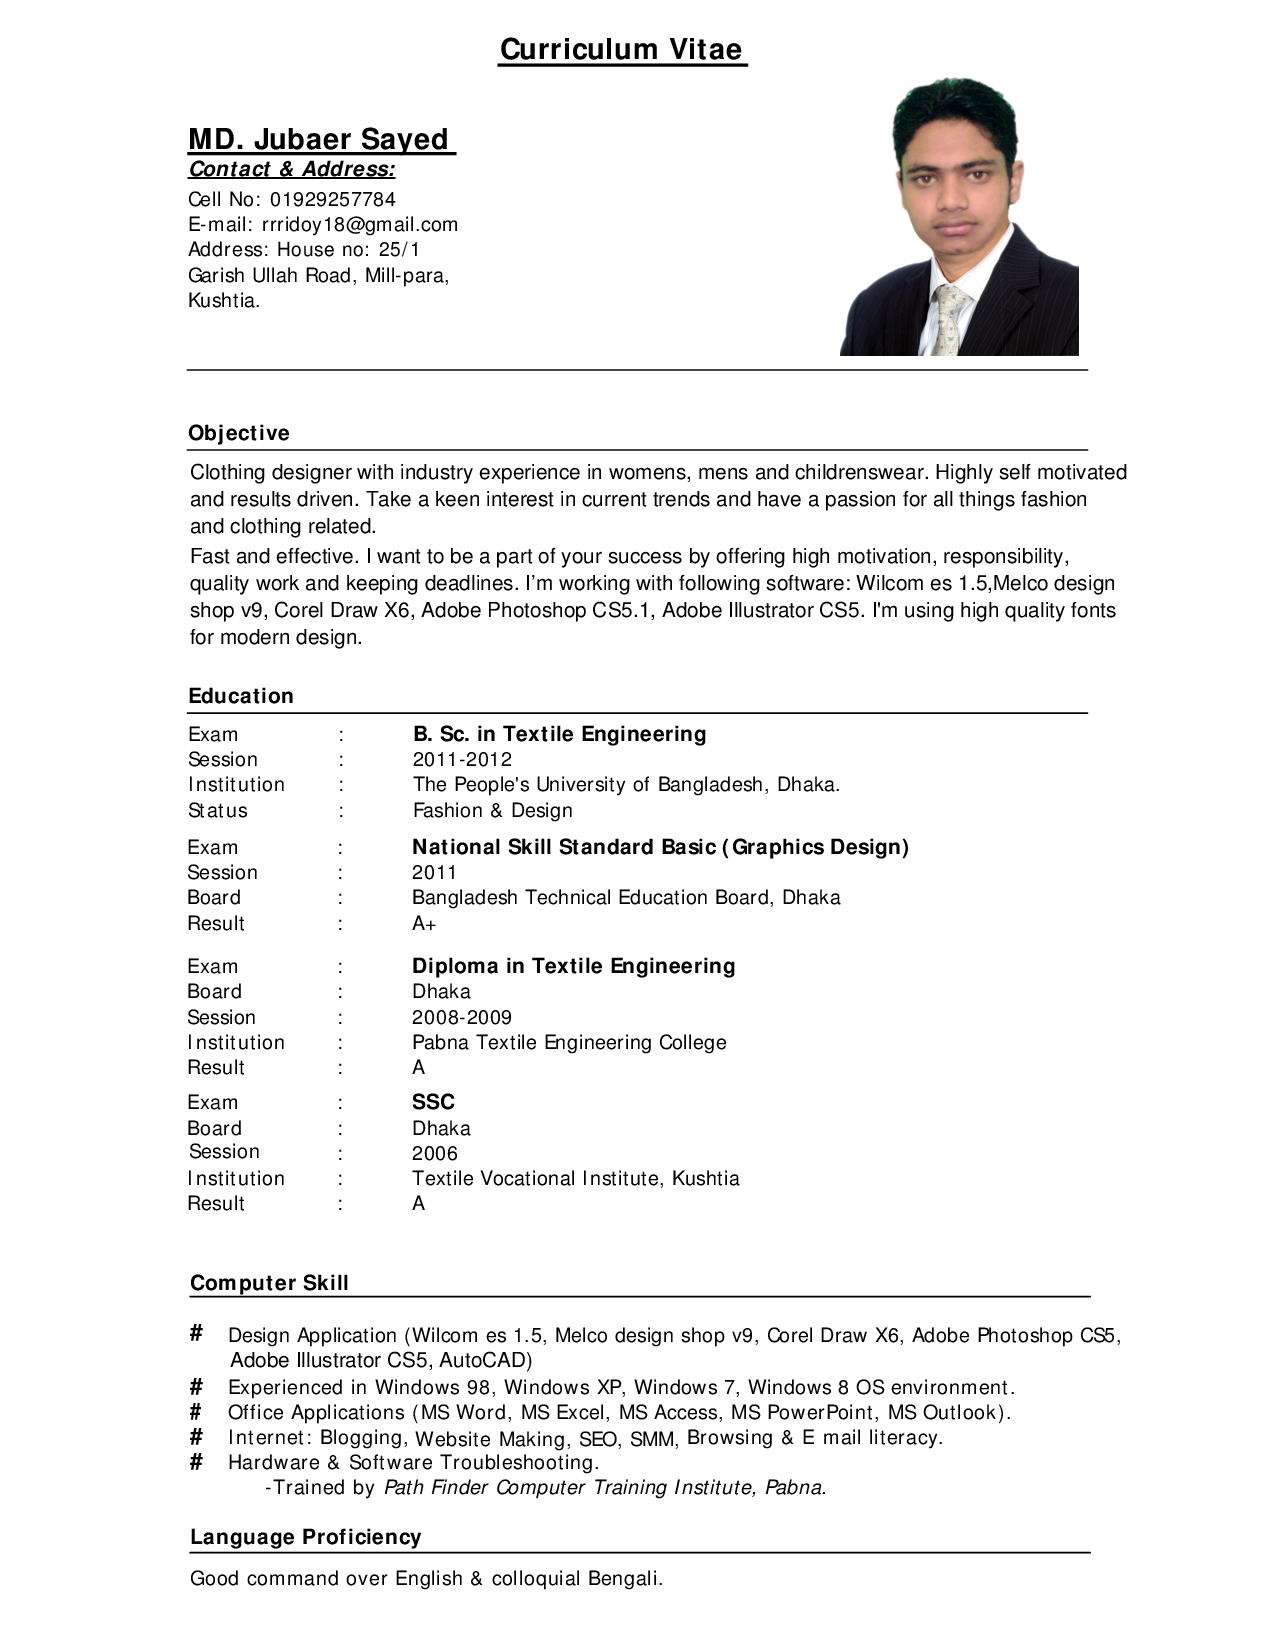 Example Resume Pdf Example Resume Computer Skills And Education For